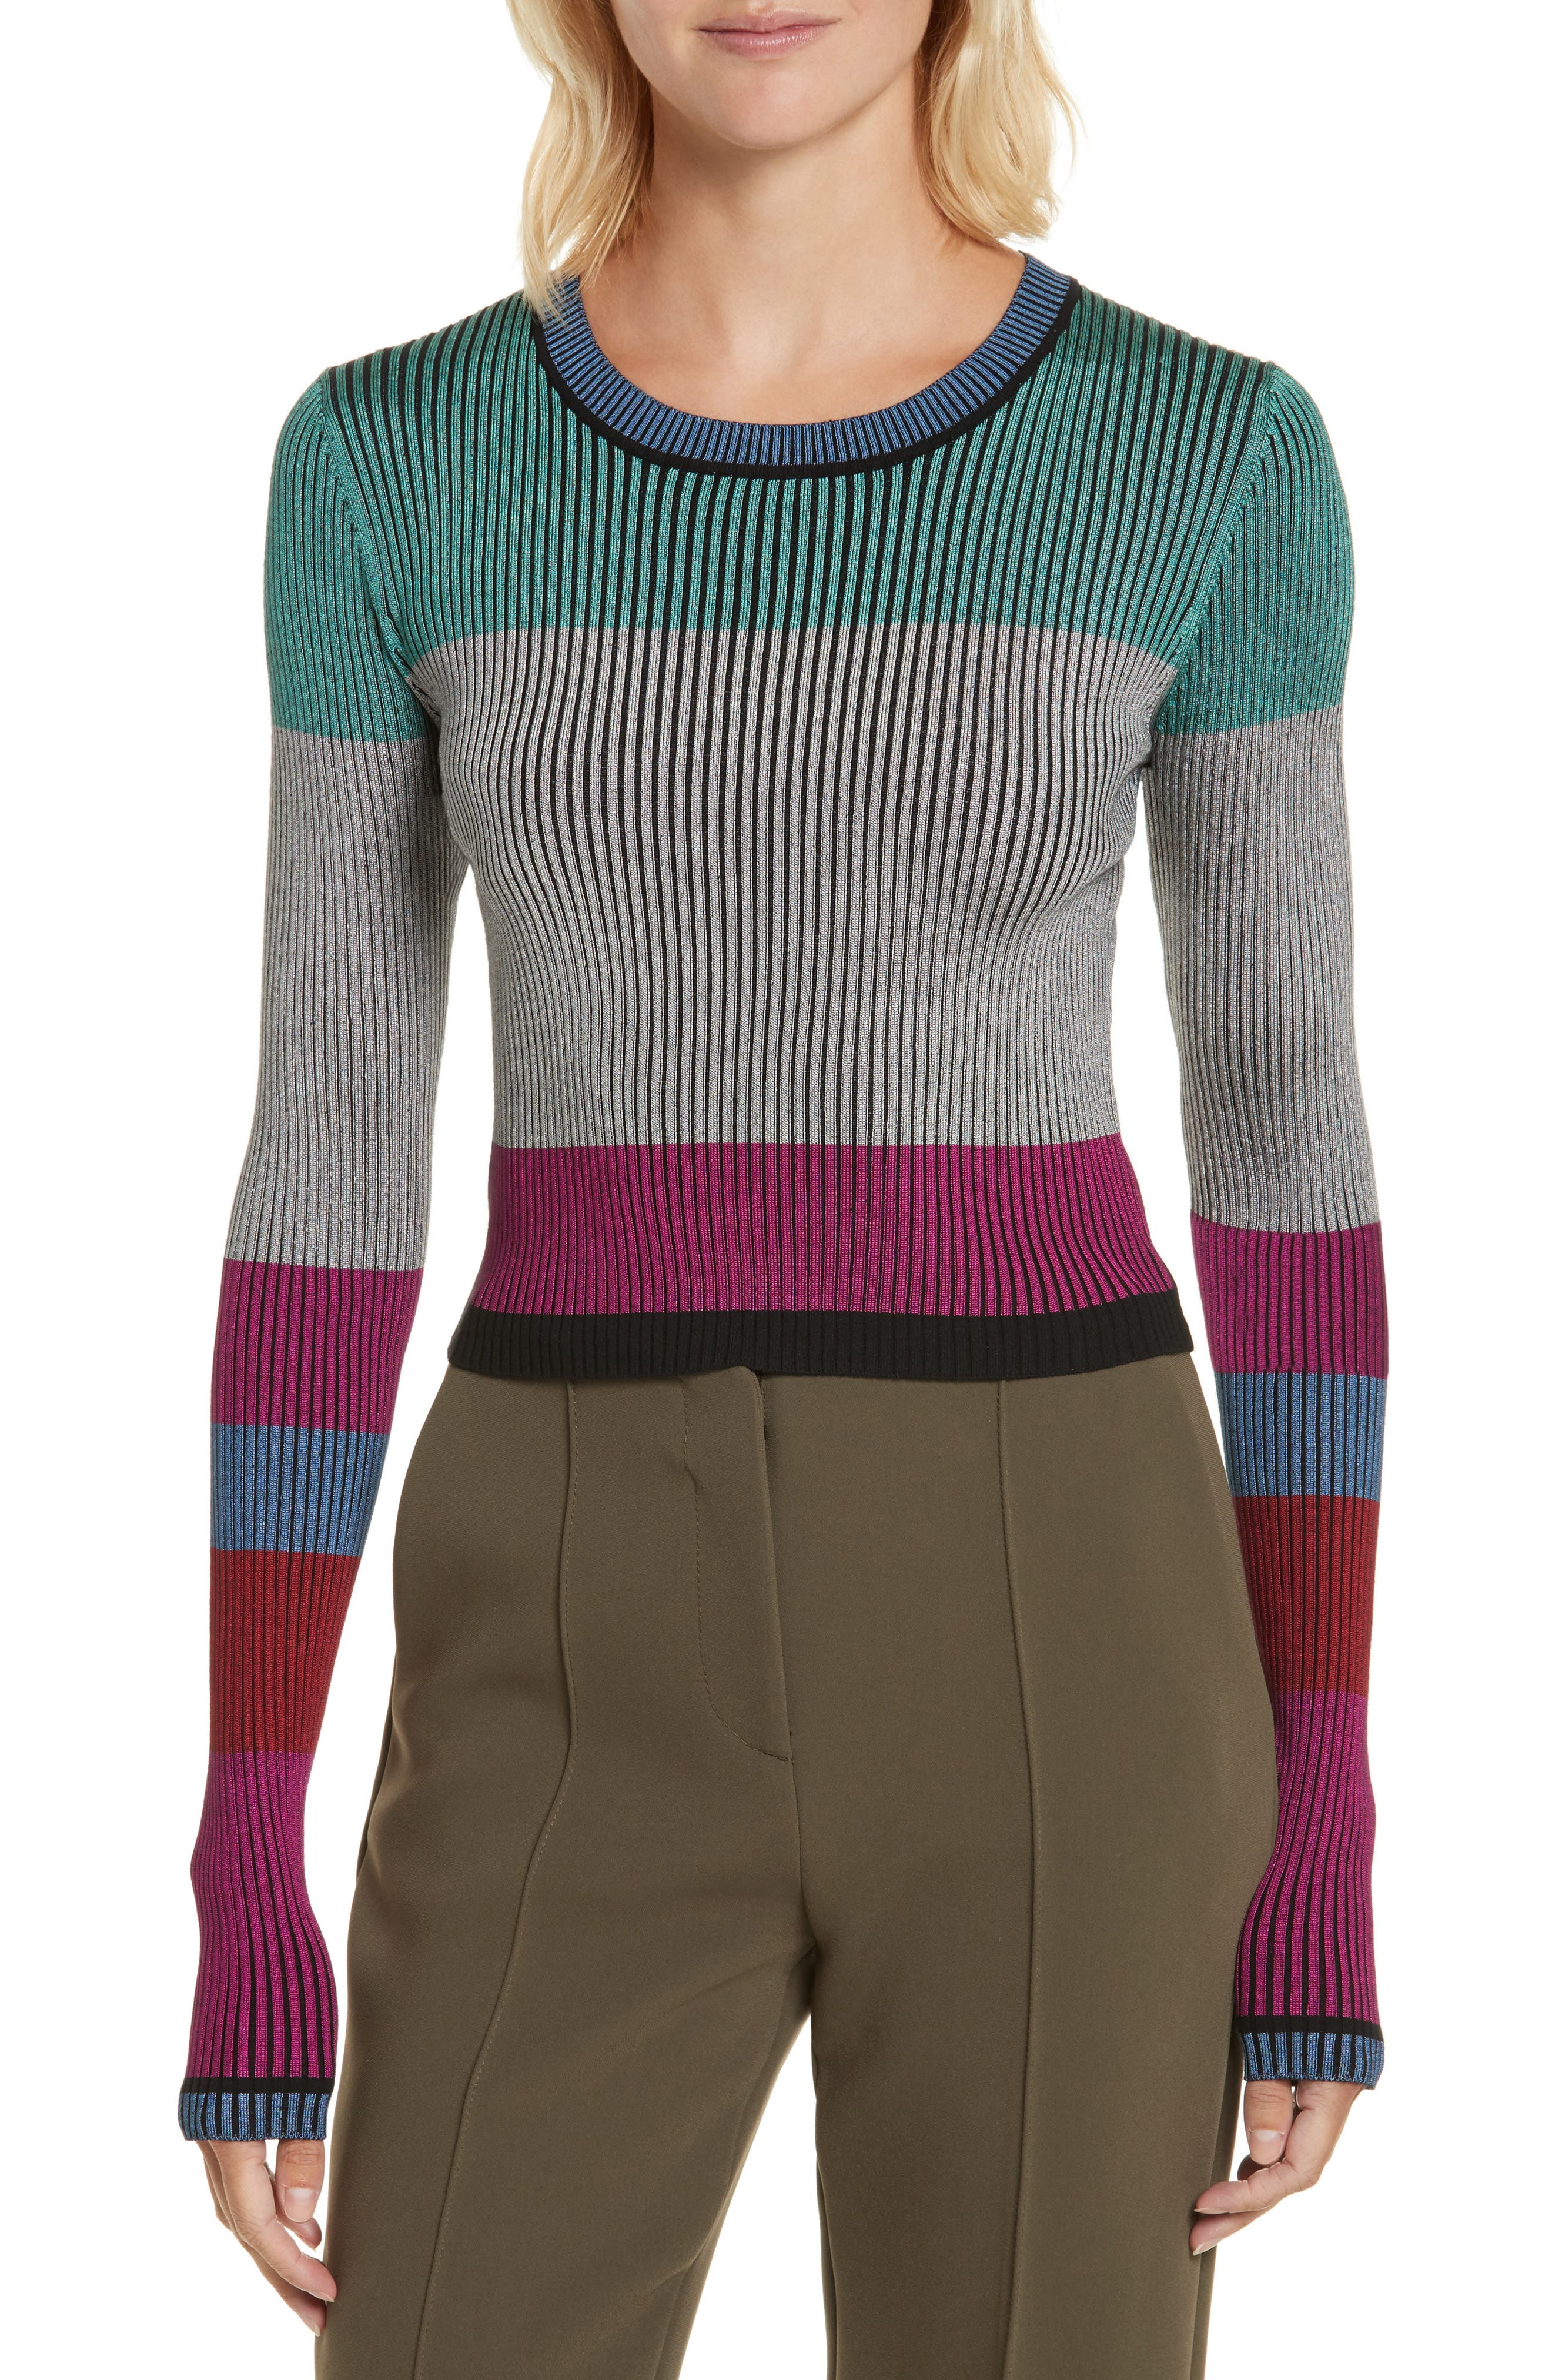 Diane von Furstenberg Cropped Plaited Pullover,                             Main thumbnail 1, color,                             073